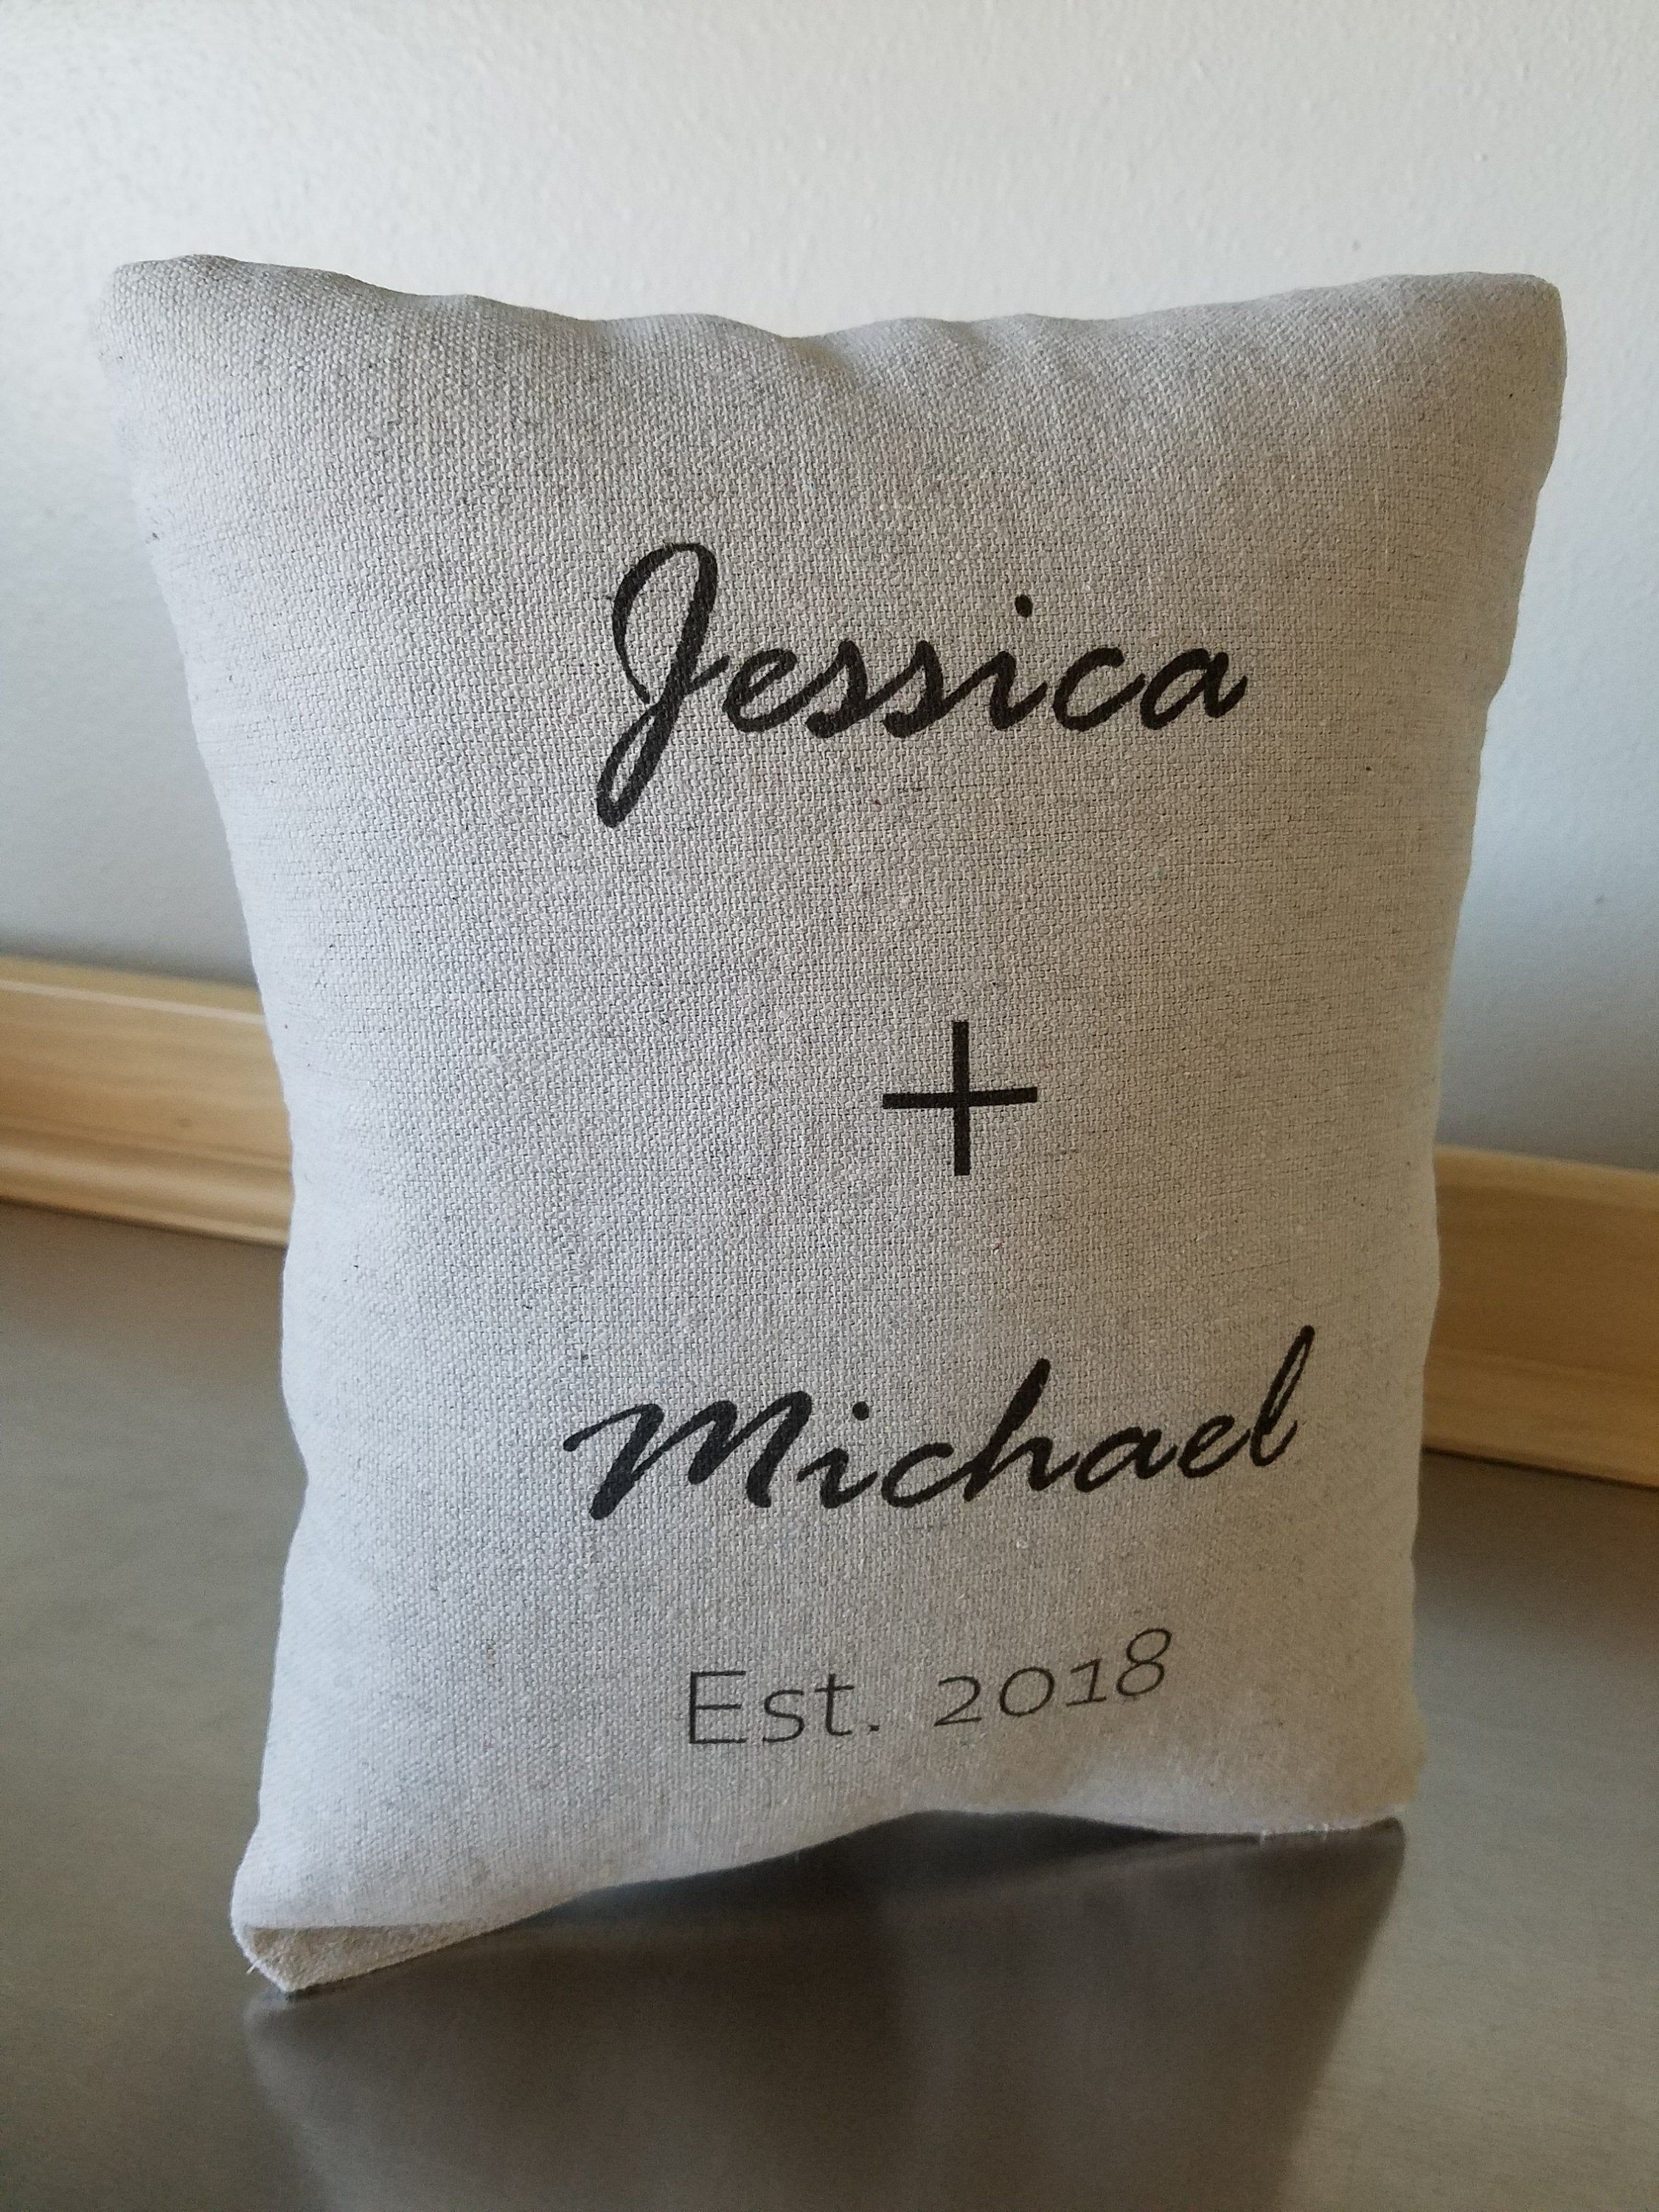 Personalized Couples Gift Pillow Names And Date Cotton 2 Etsy In 2020 Personalized Couple Gifts Year Anniversary Gifts Birthday Gifts For Sister